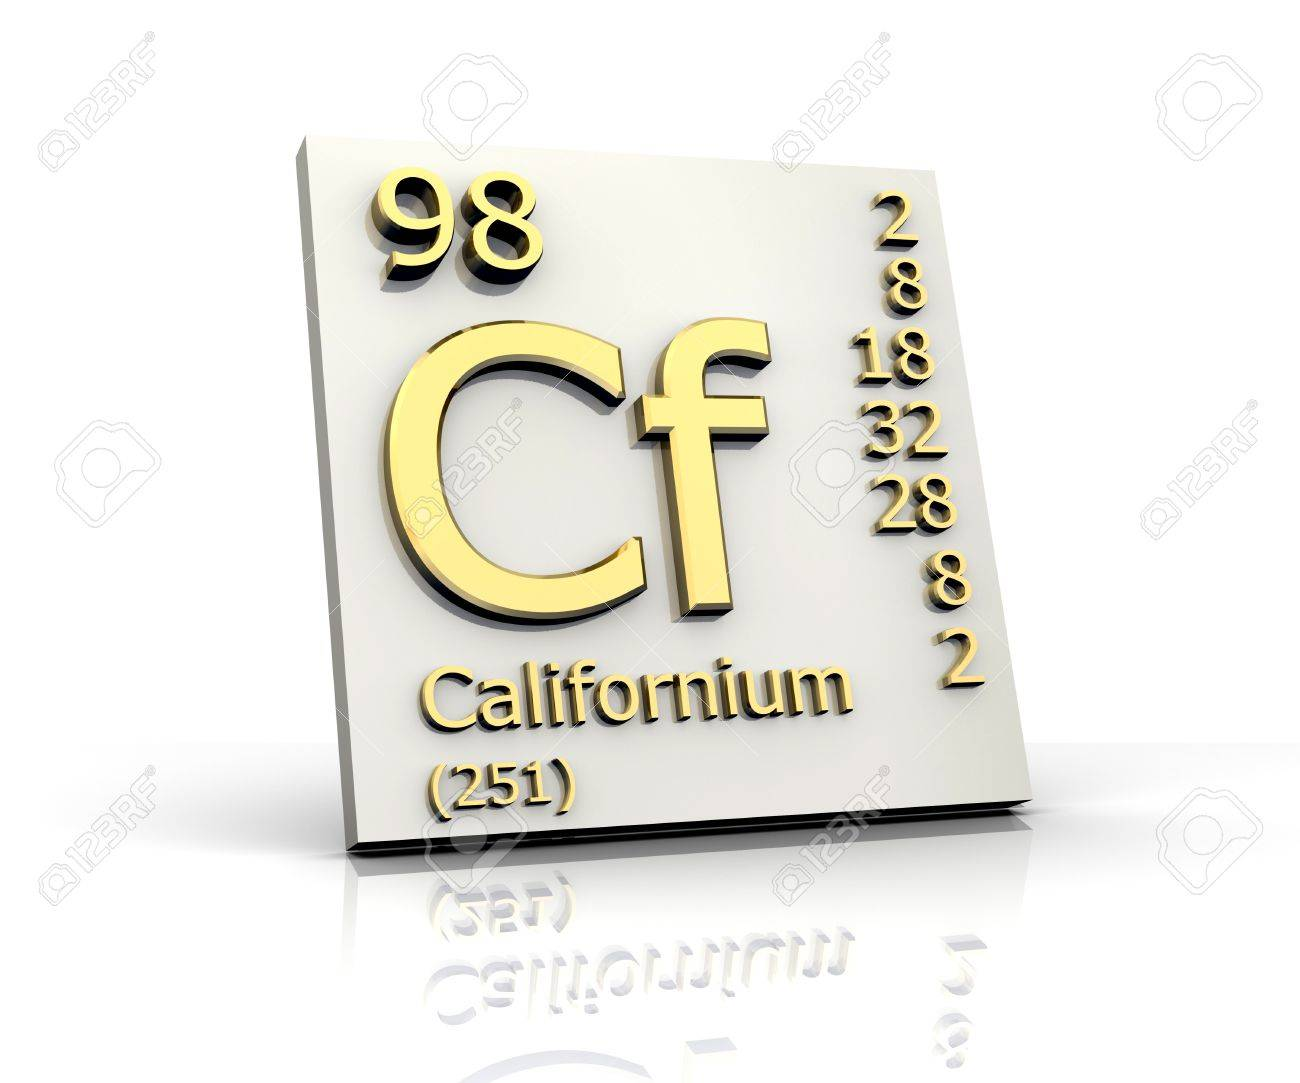 Uuq periodic table choice image examples of product market uuu element periodic table images periodic table images 10170810 californium periodic table of elements 3d made gamestrikefo Image collections